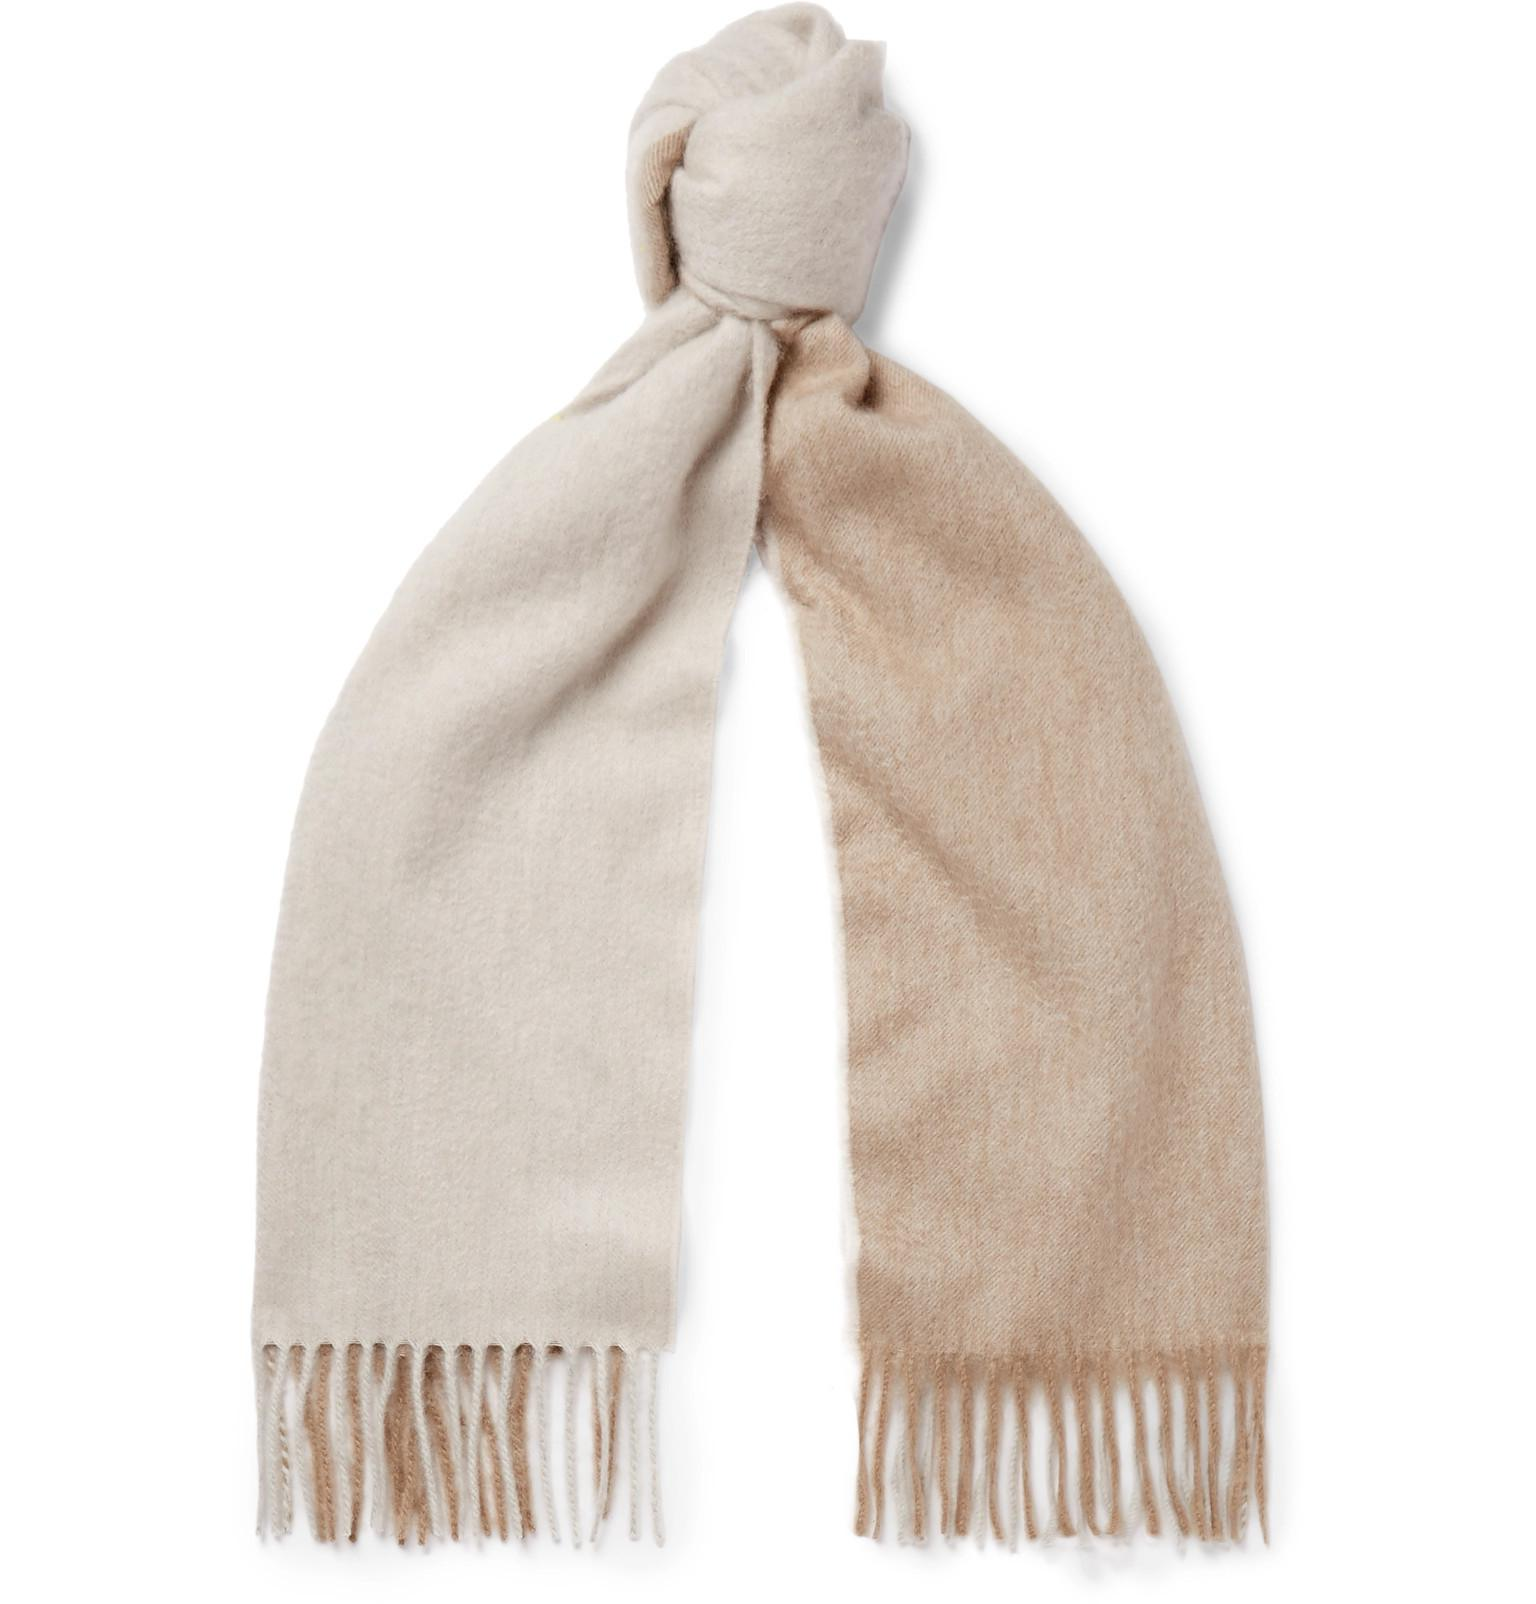 55701a93f80 Lyst - Begg   Co Arran Two-tone Fringed Cashmere Scarf for Men